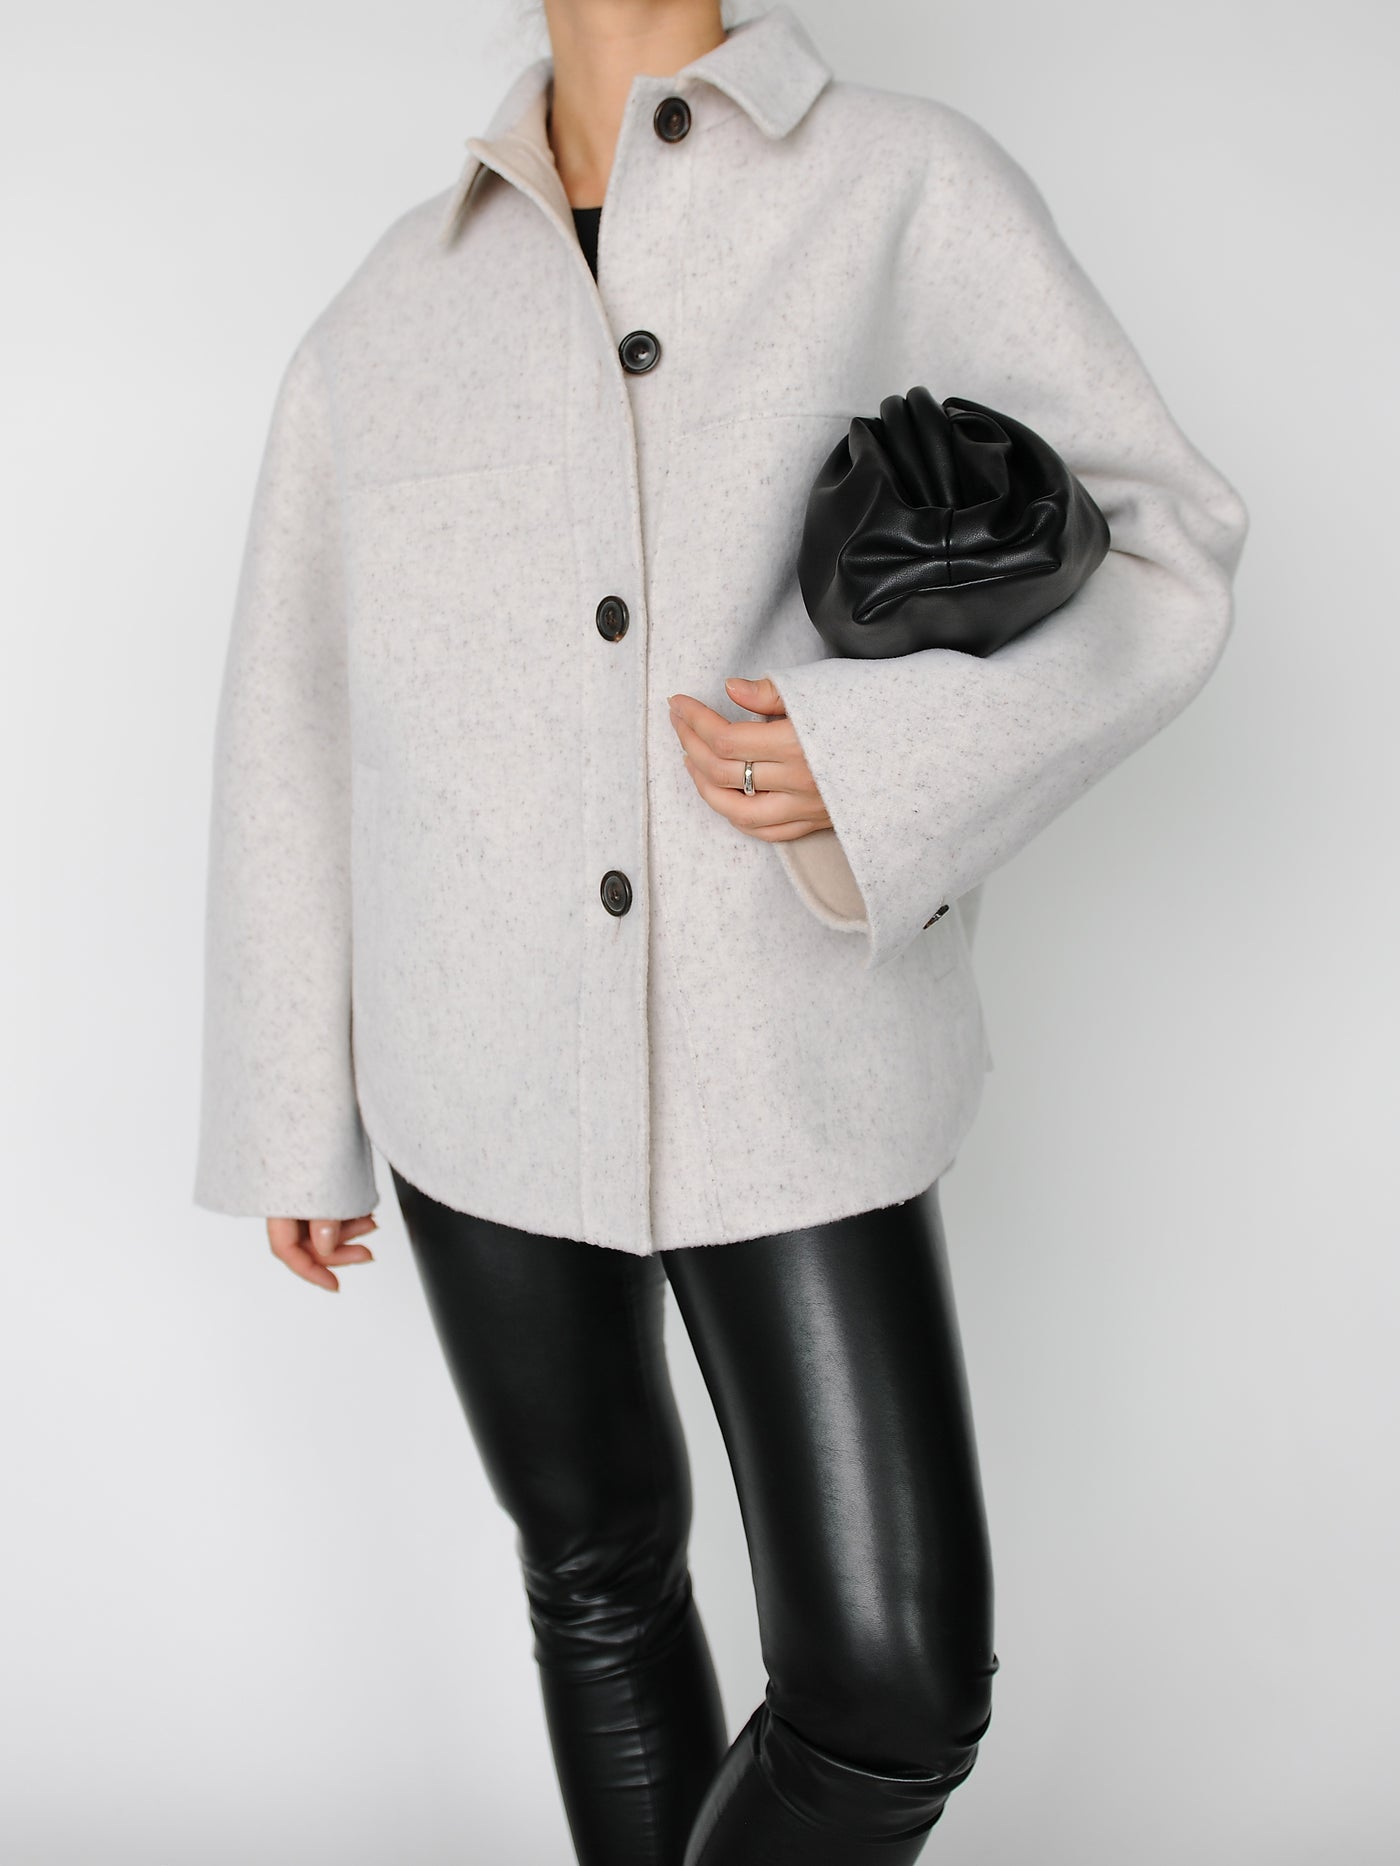 Ivory 2 in 1 Shirt Jacket - Marble Hive